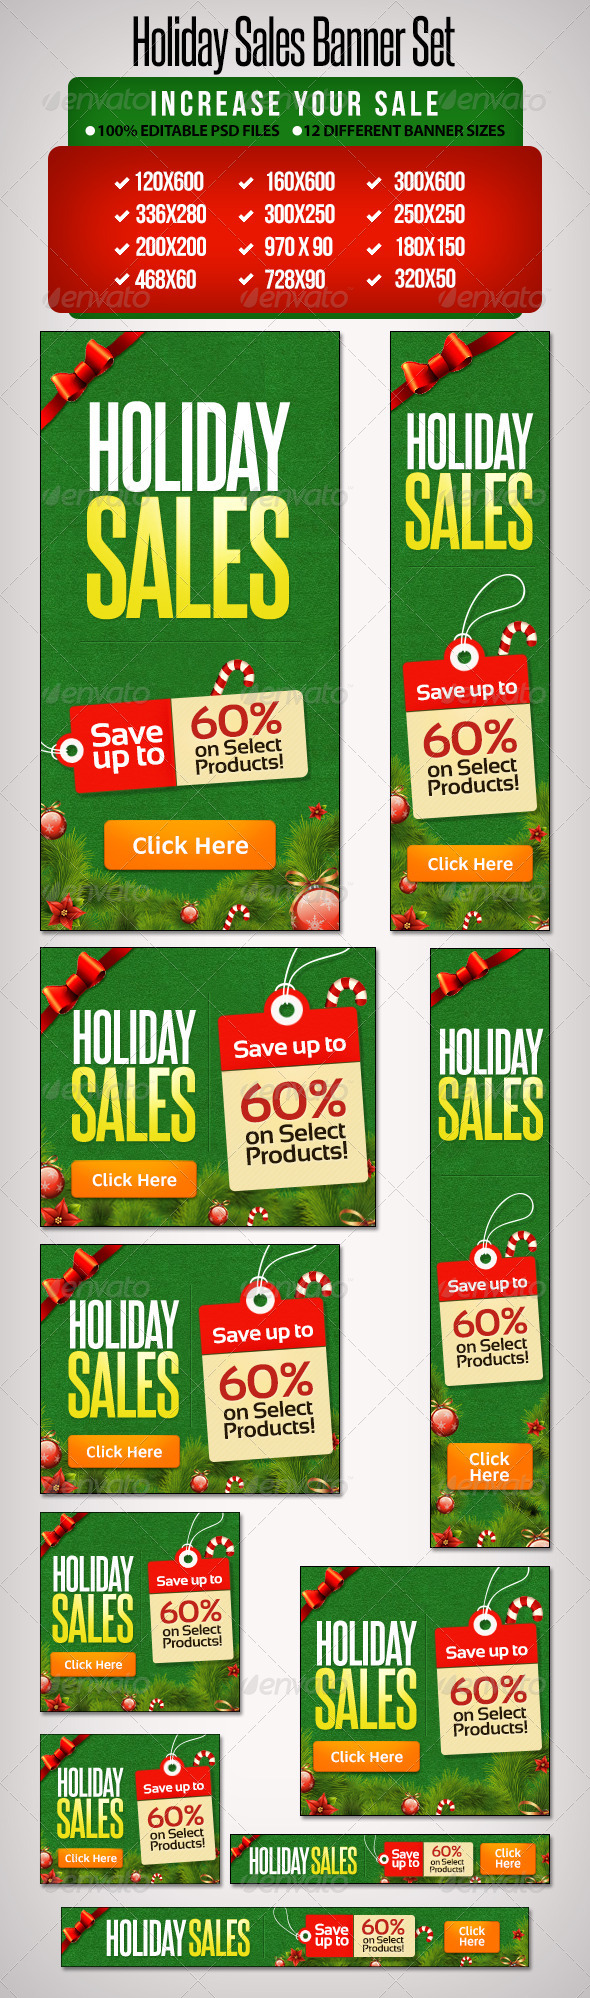 GraphicRiver Holiday Banner Set 7 12 Sizes 6397900